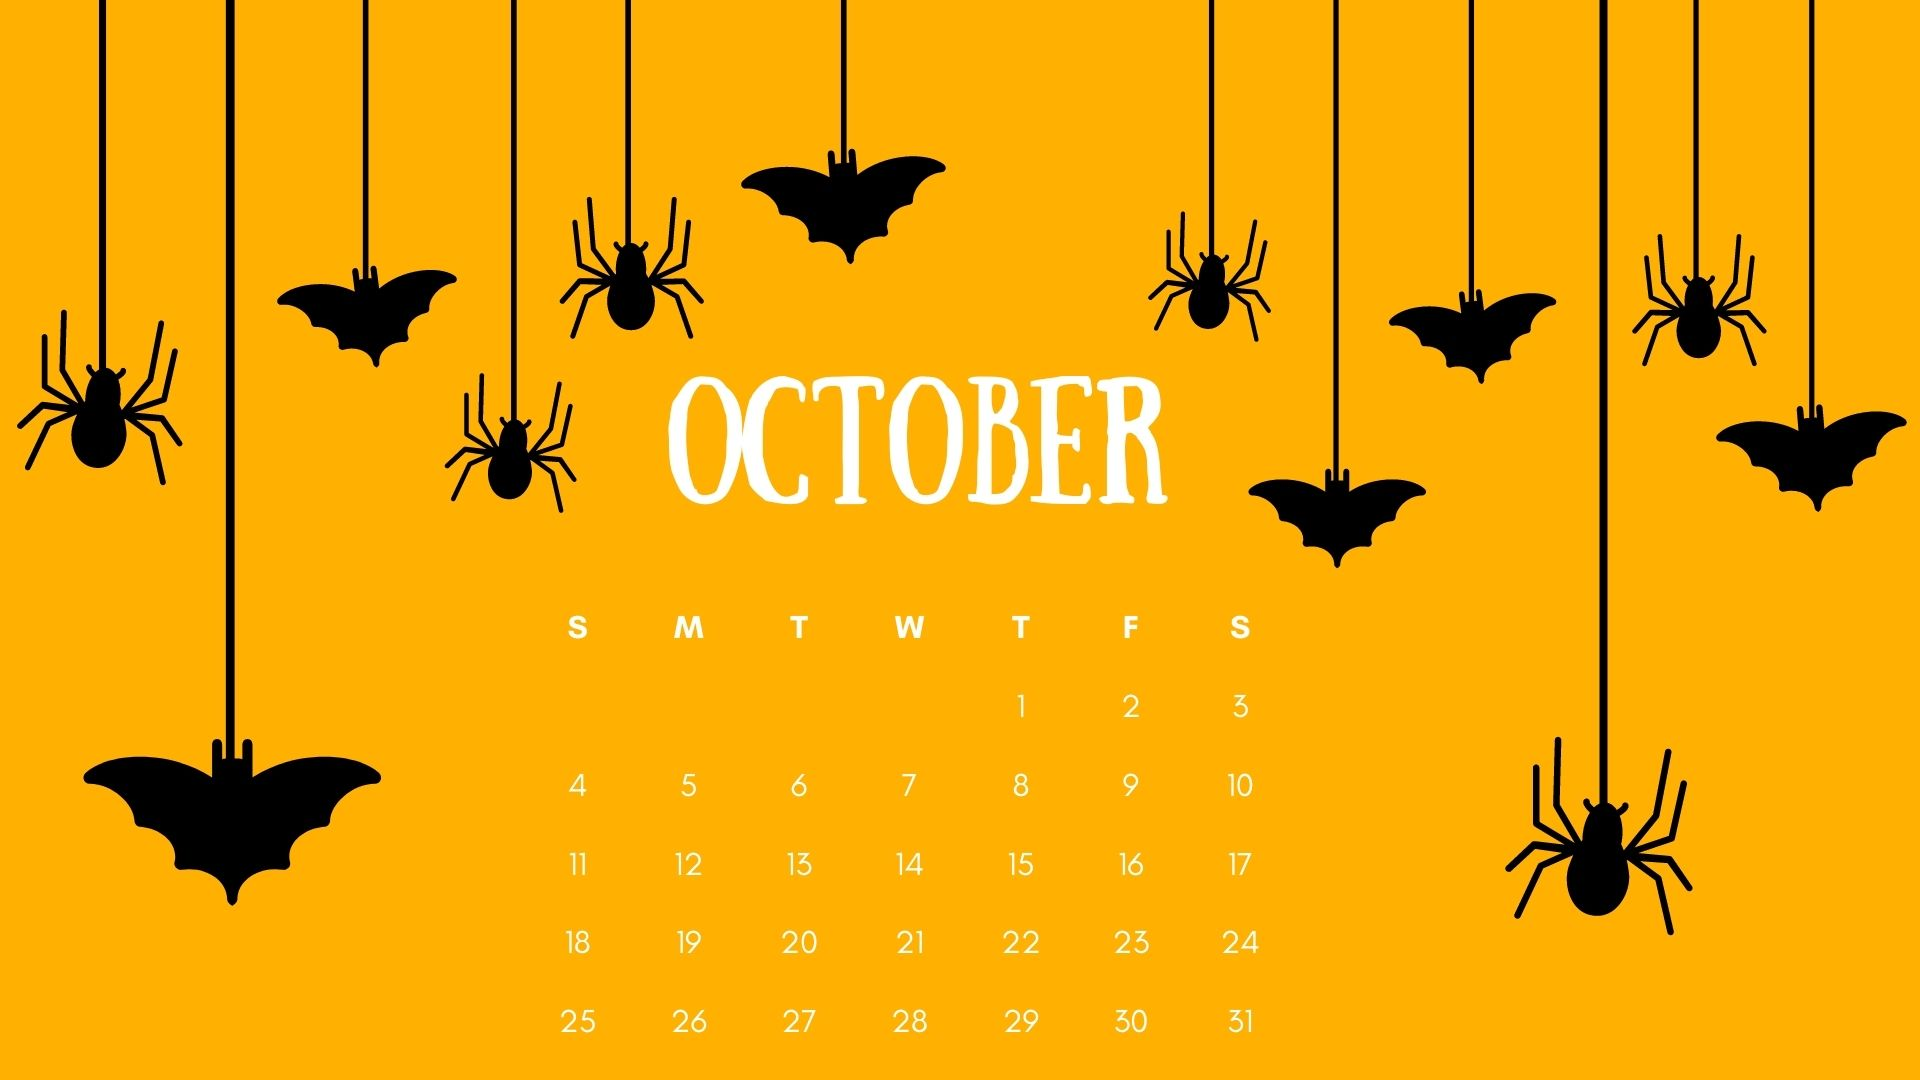 october ipad wallpaper